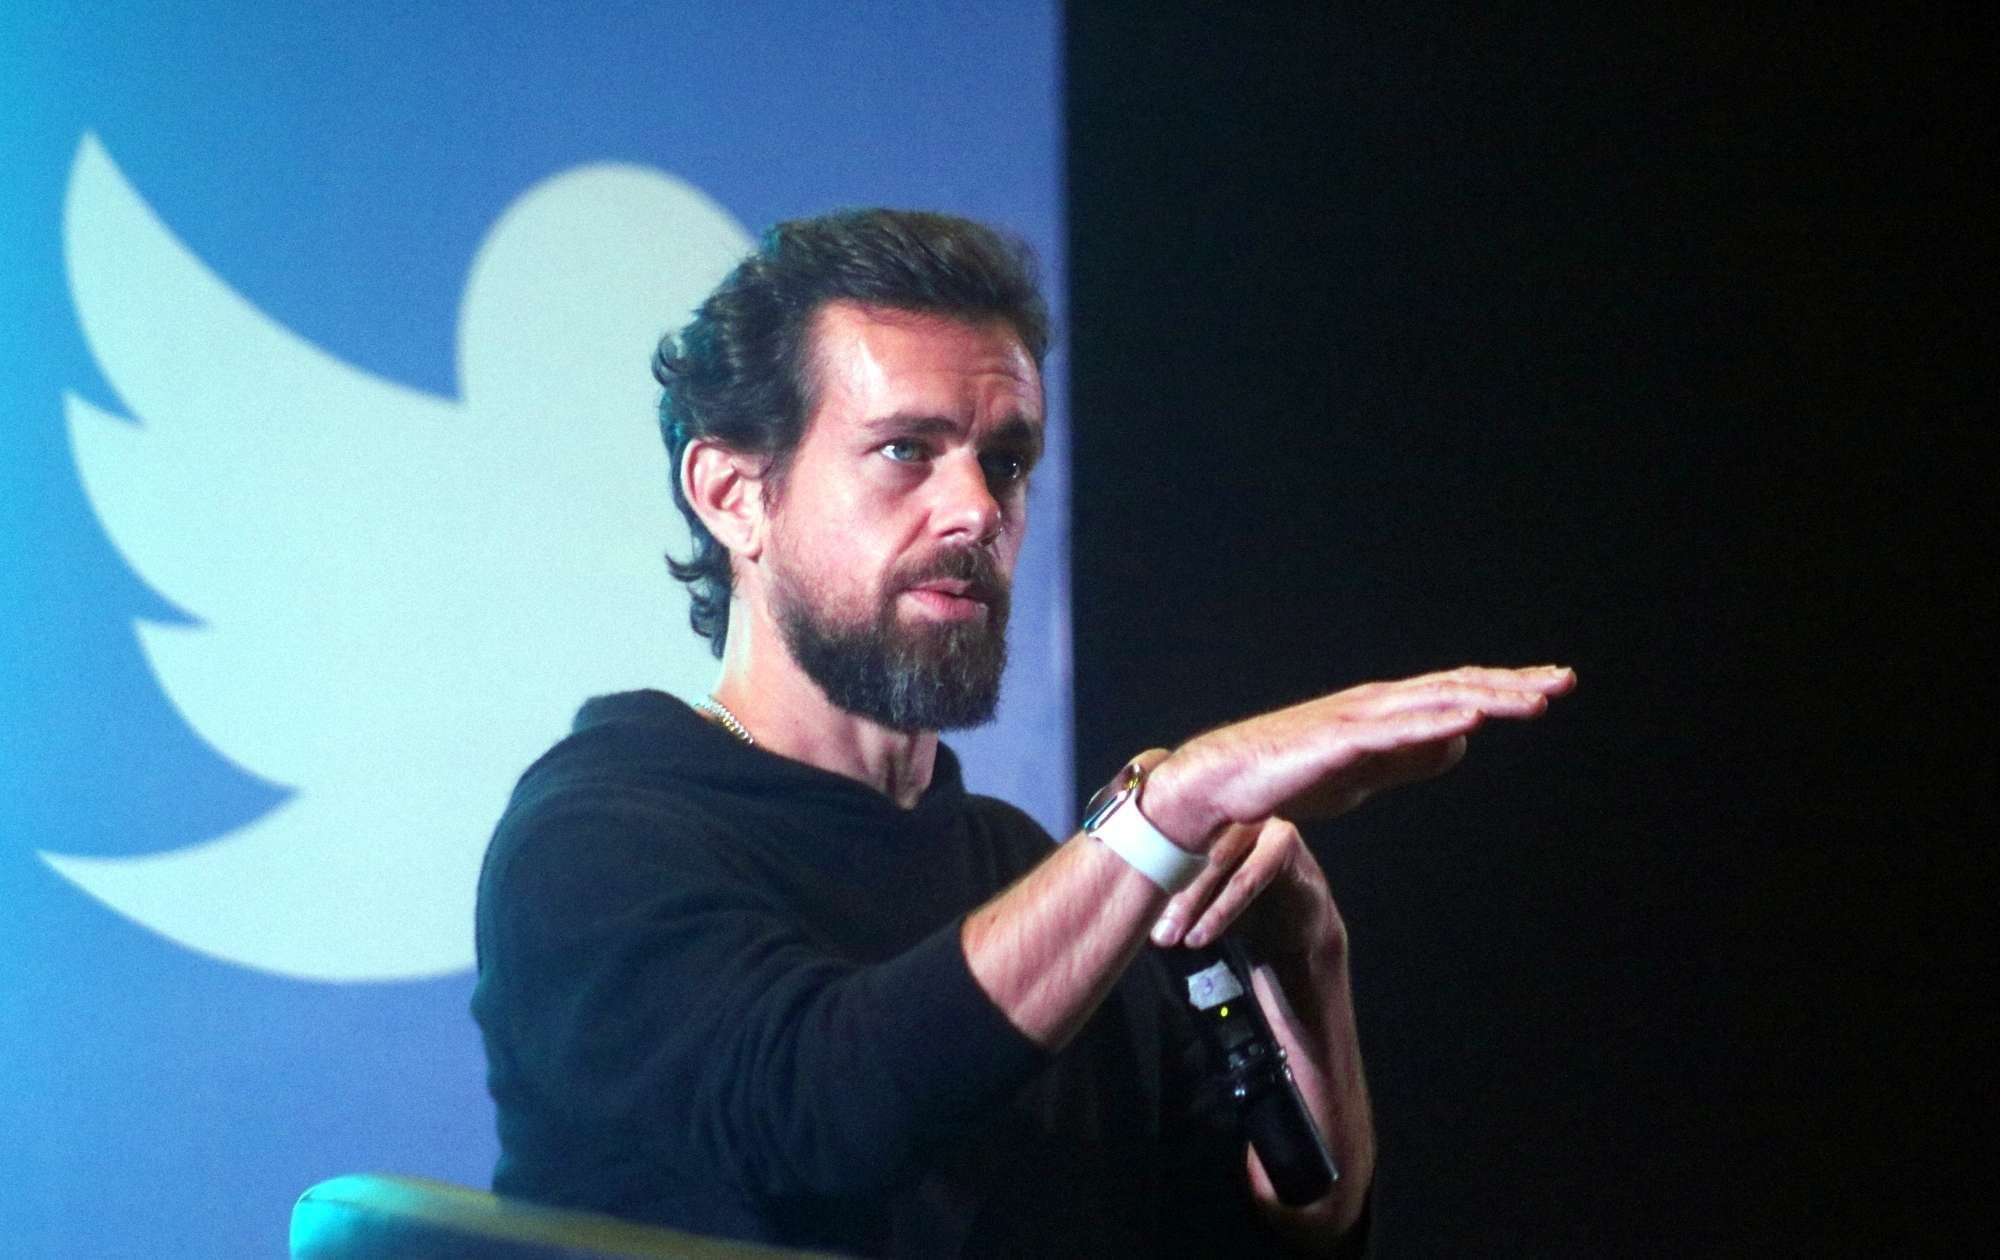 Twitter CEO Jack Dorsey's Square firm doubles down on Bitcoin — invests another $170 million in crypto - Business Insider India